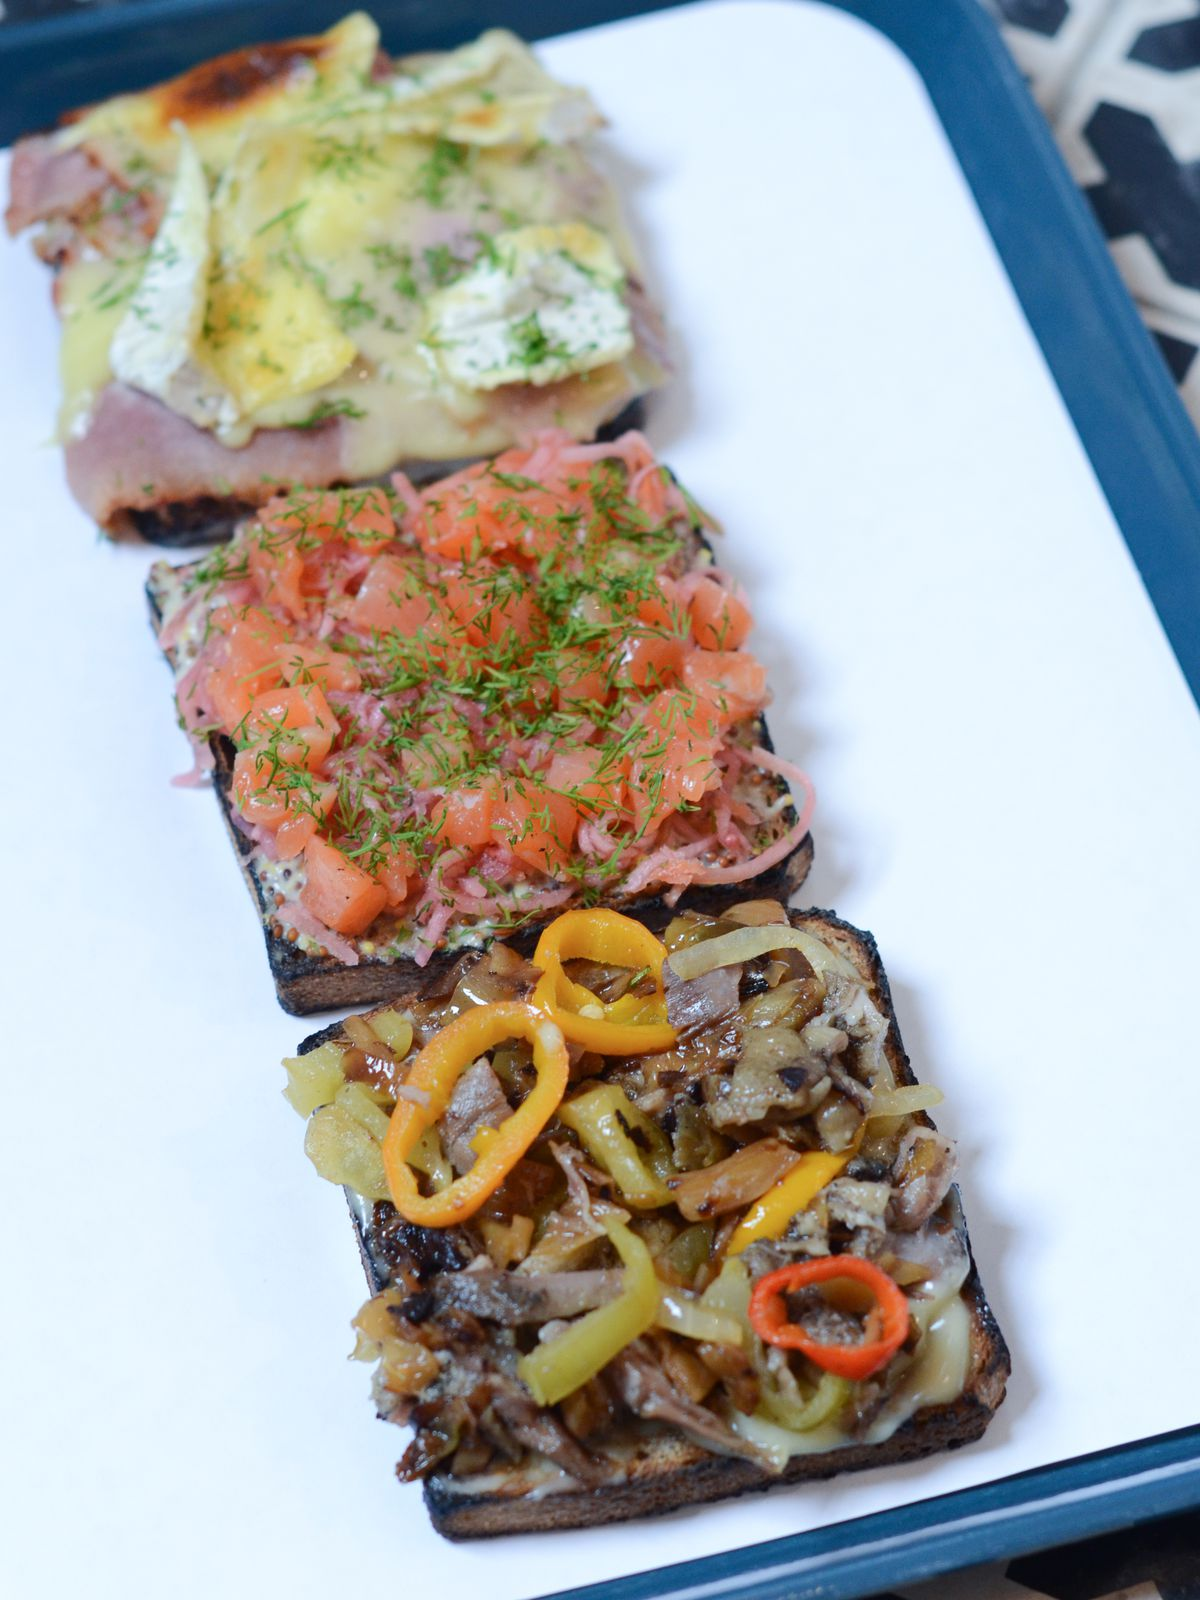 Open sandwiches. Photo by Stephanie A. Meyer